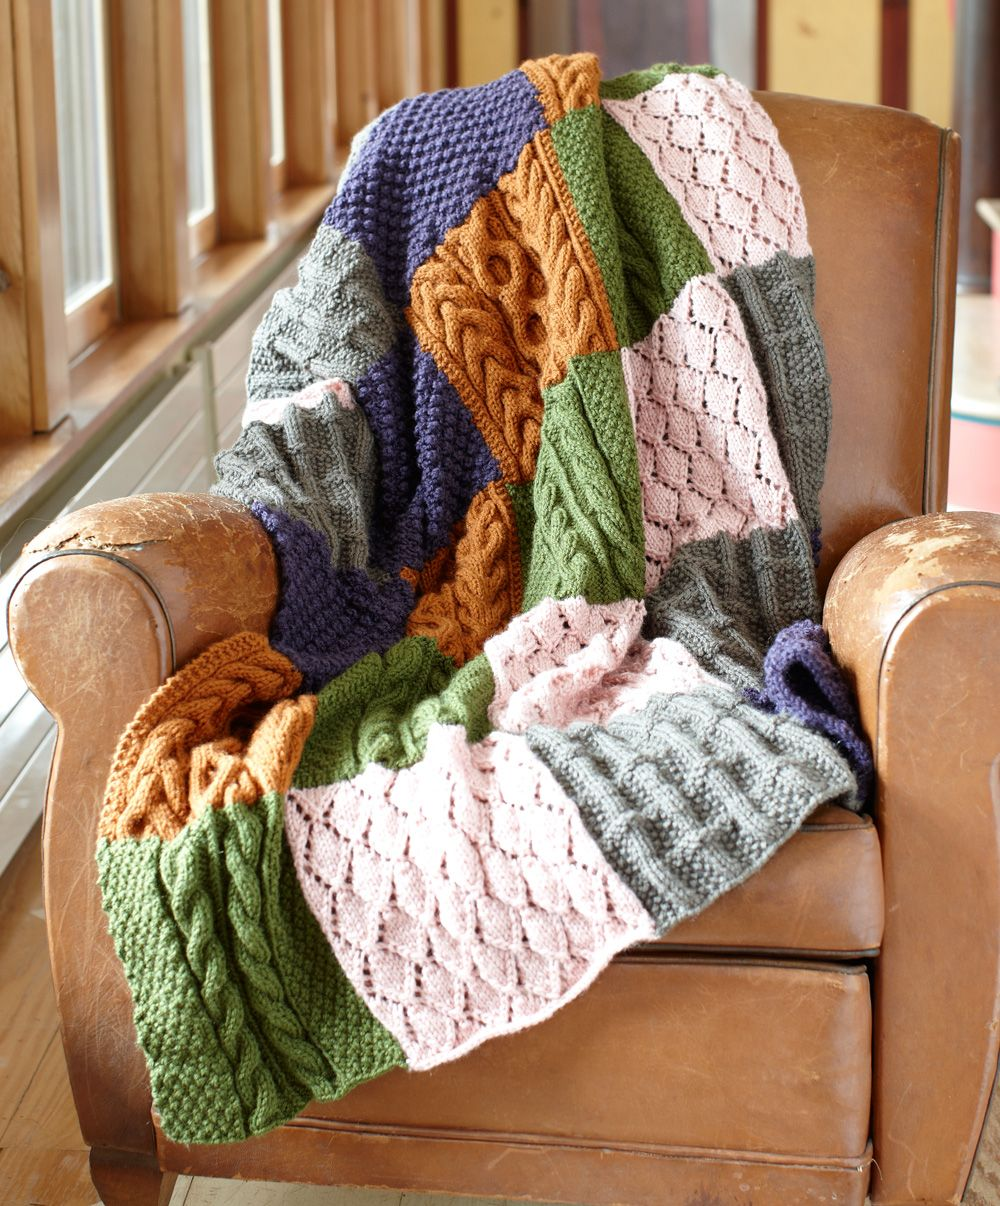 Knitting Patterns Blankets Patchwork : Free Knitting Pattern: Patchwork Sampler Throw #todo Pattern Pinterest ...